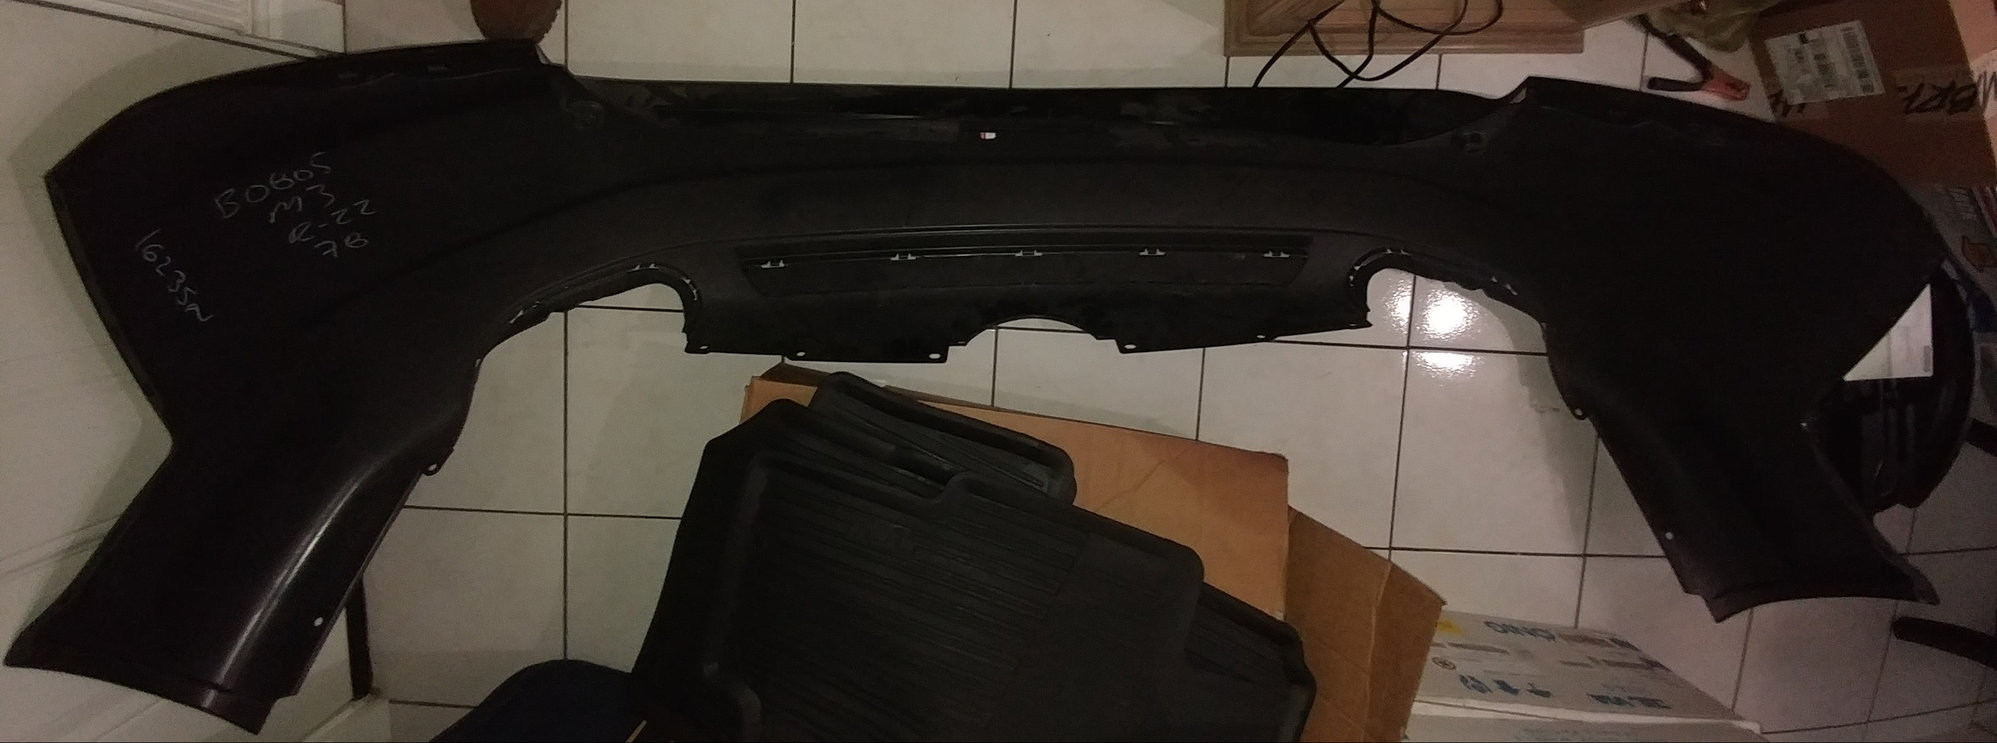 OEM Type S rear bumper ONLY (non-painted)